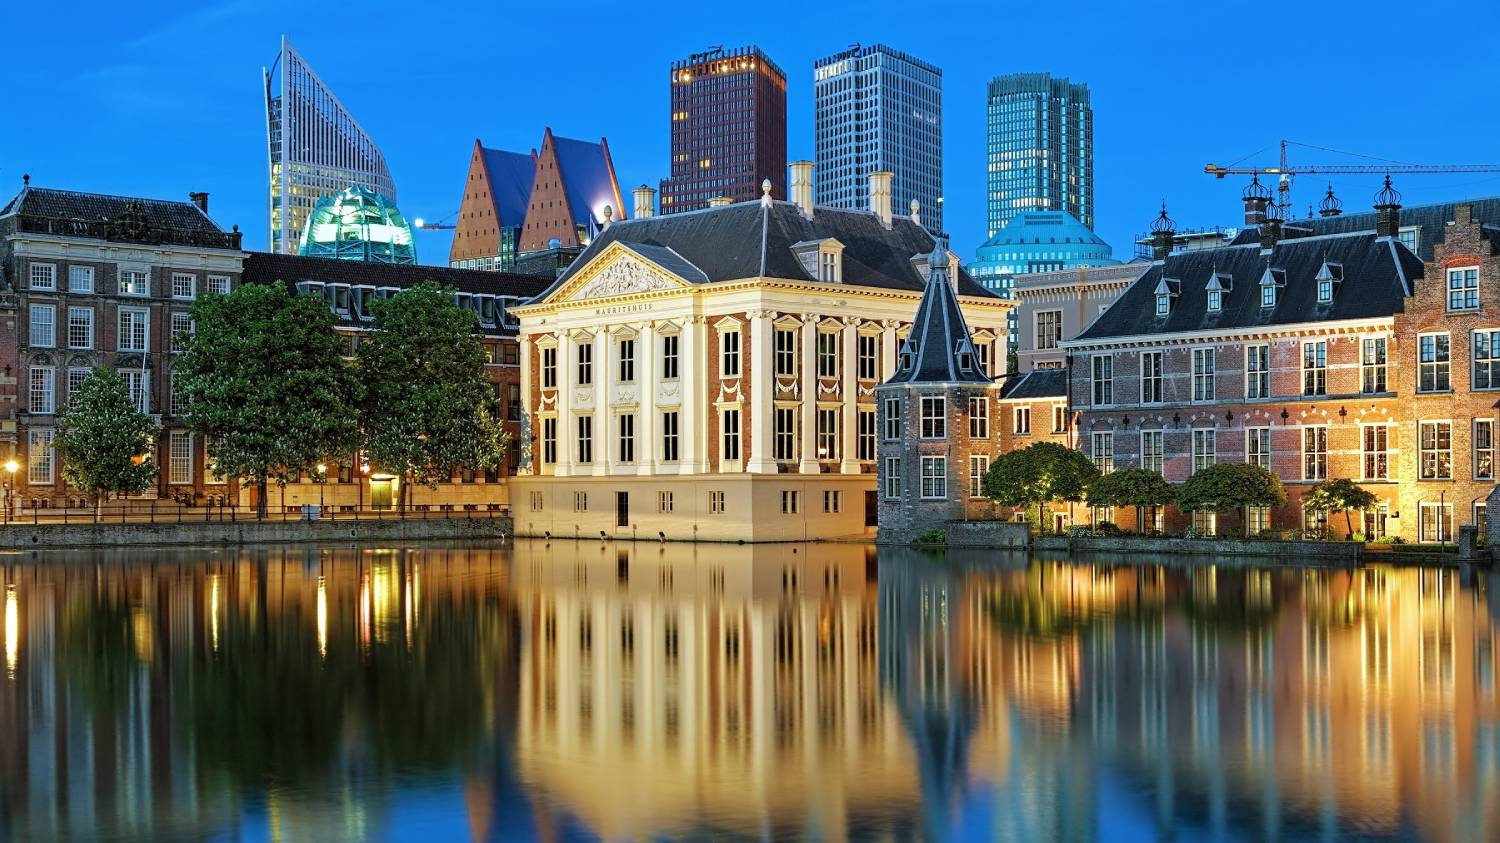 The Hague - Things To Do In Amsterdam